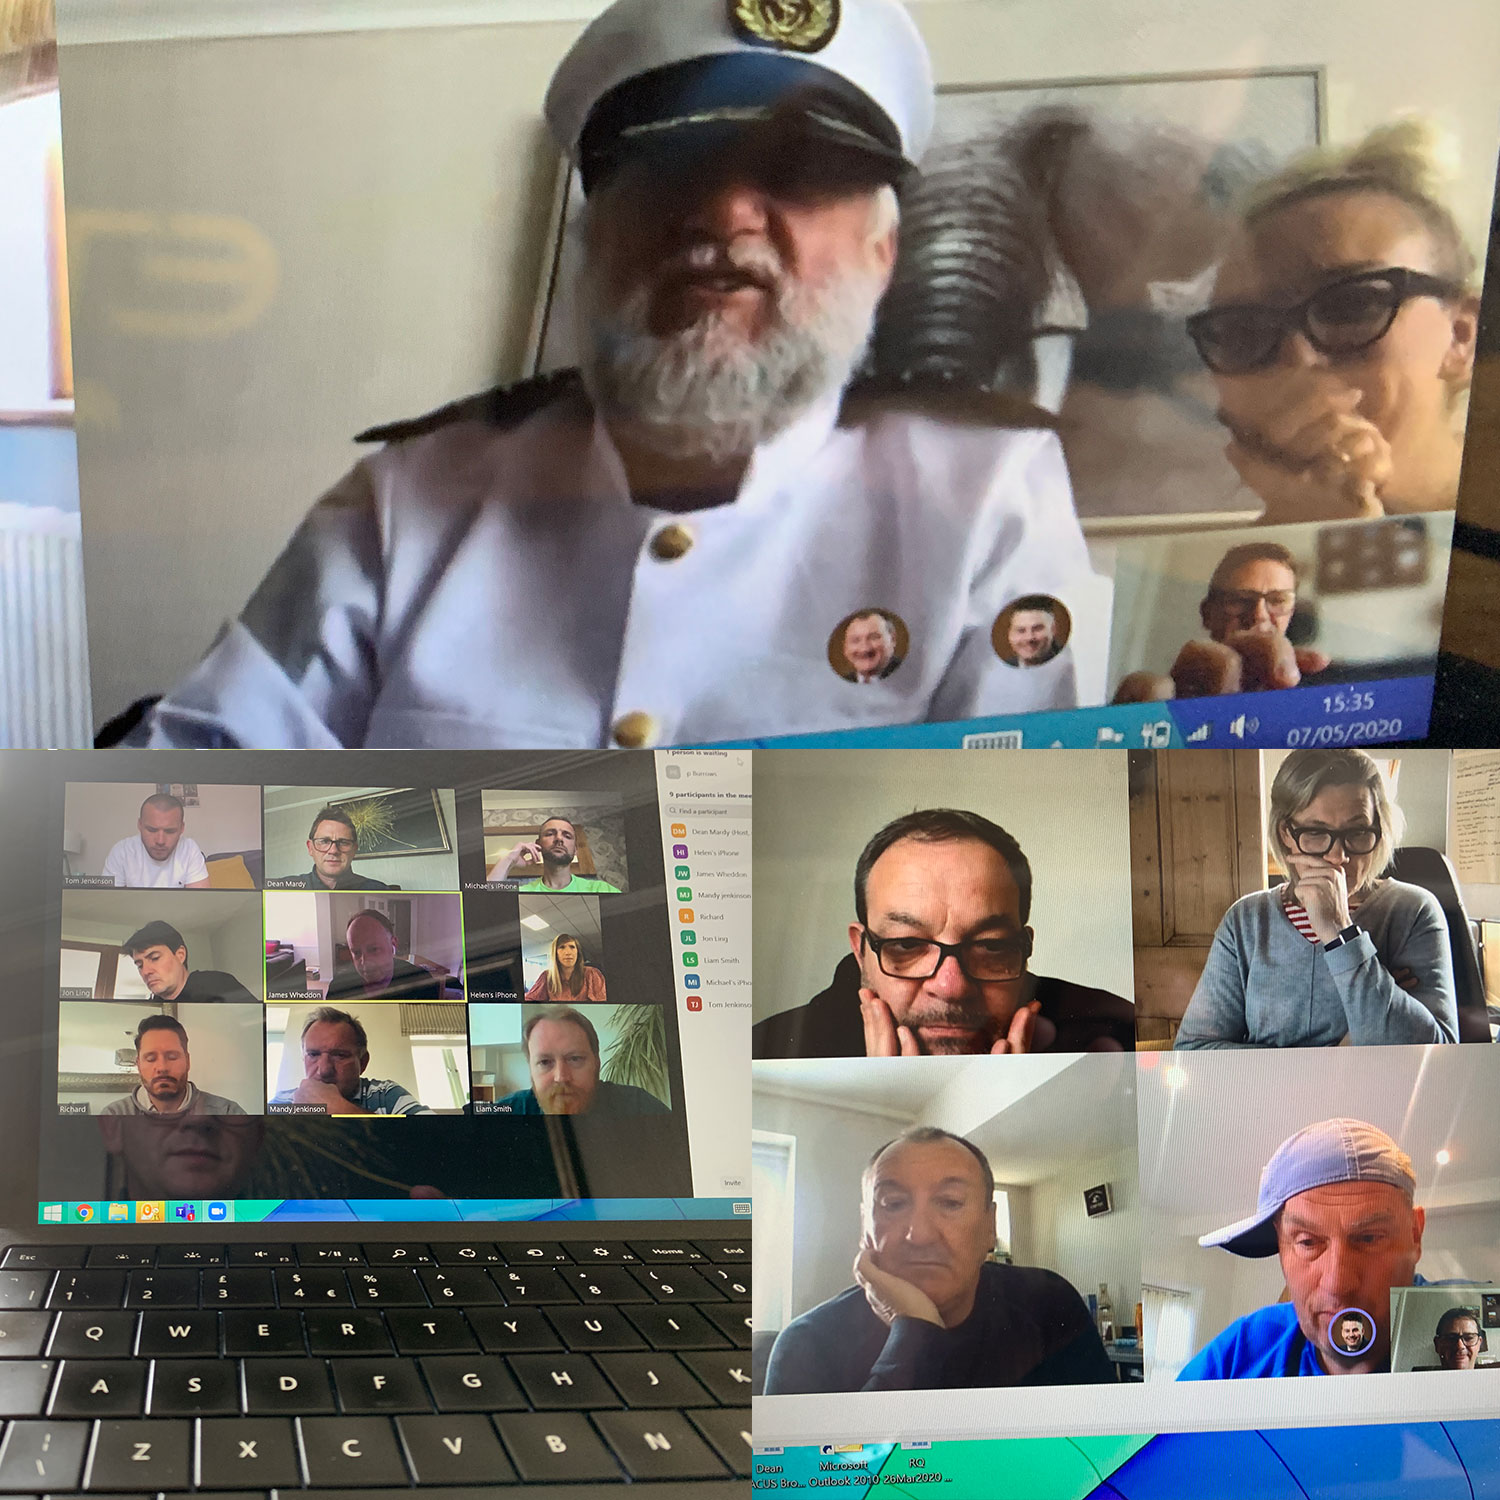 Who knew video-conferencing could be fun!